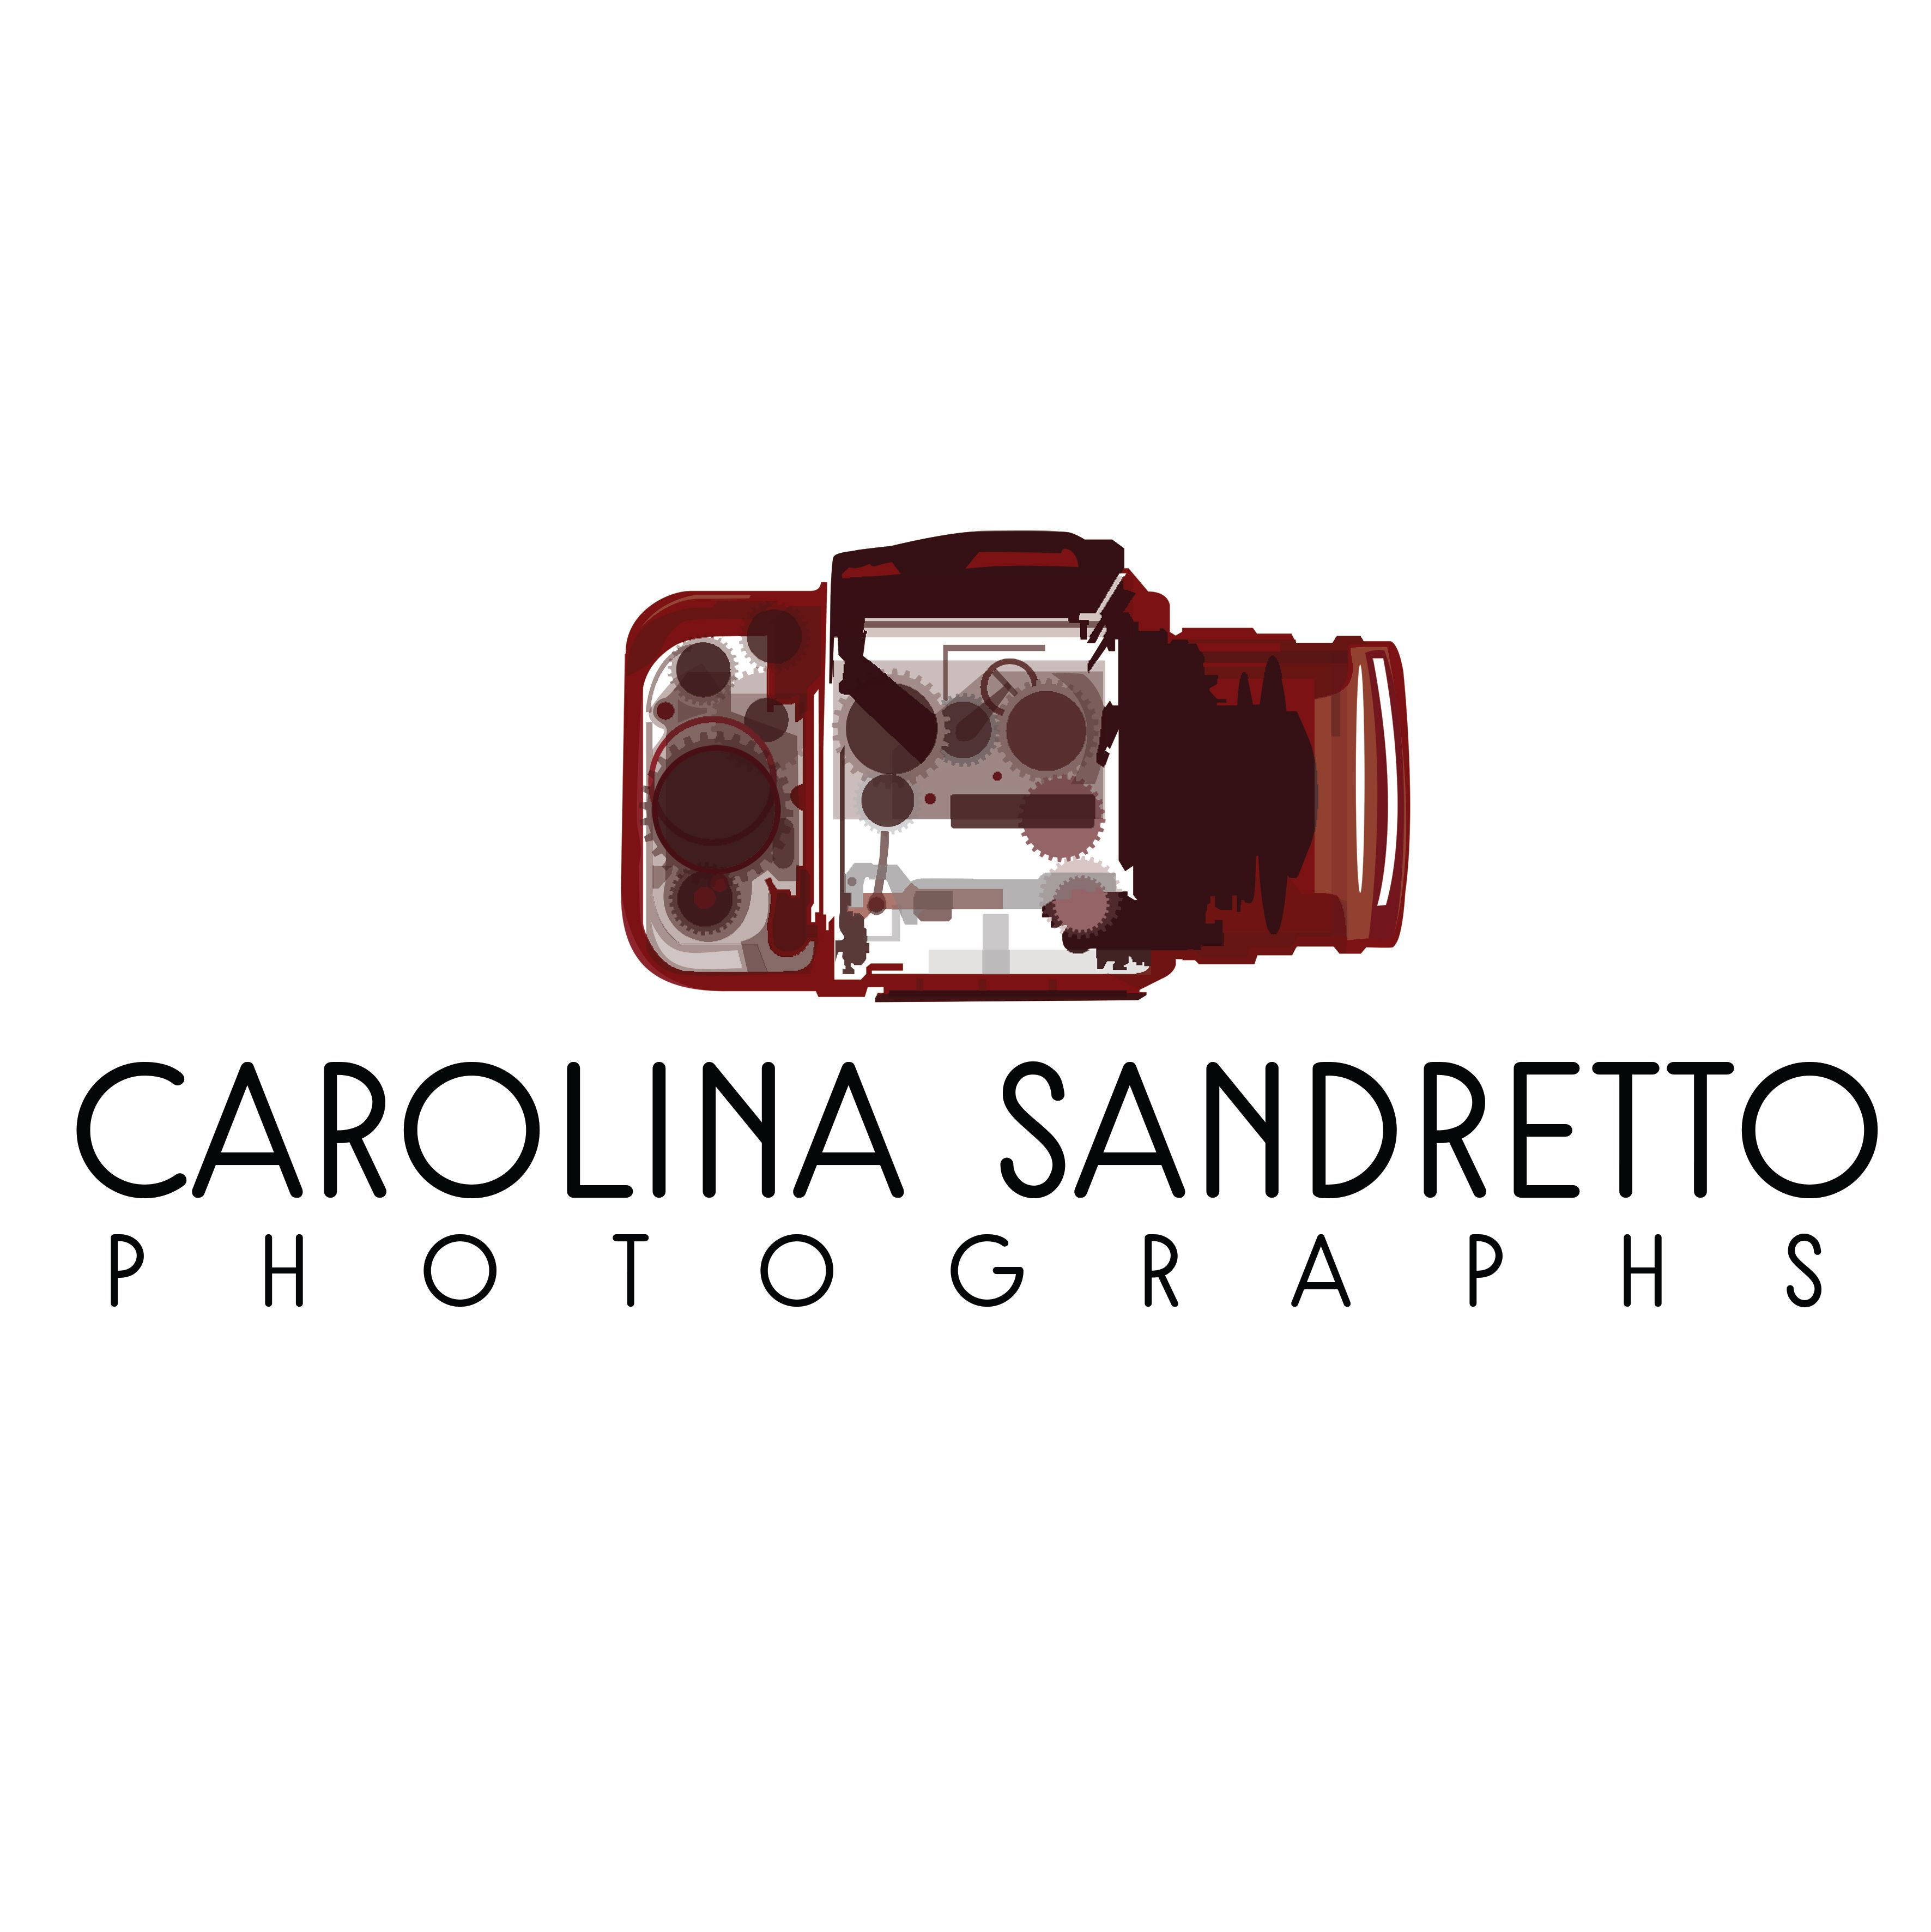 Carolina Sandretto Photographs